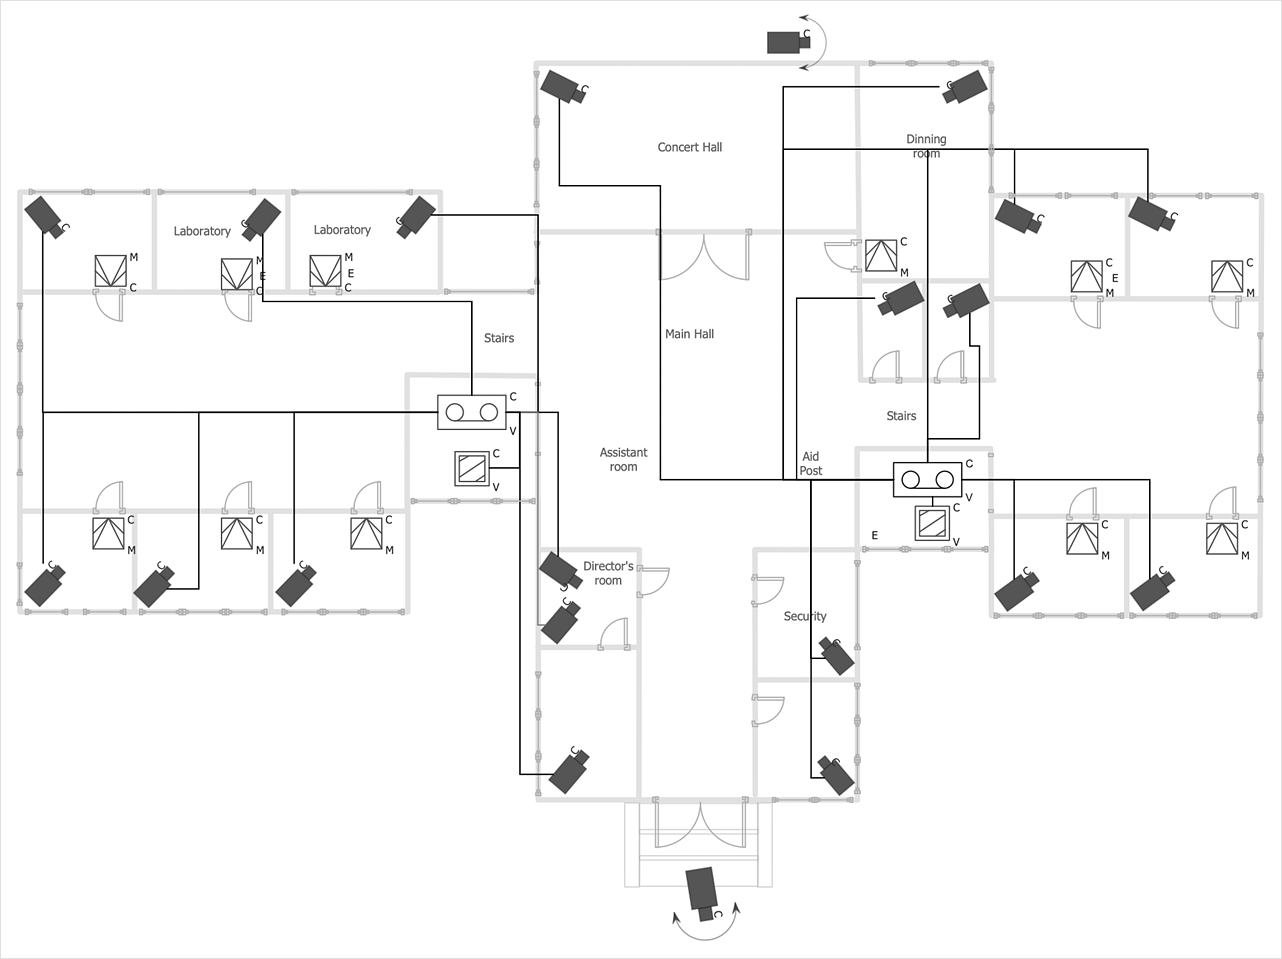 How To Create A Cctv Diagram How To Create Cctv Network Diagram Classroom Layout Drawing Cctv Layout